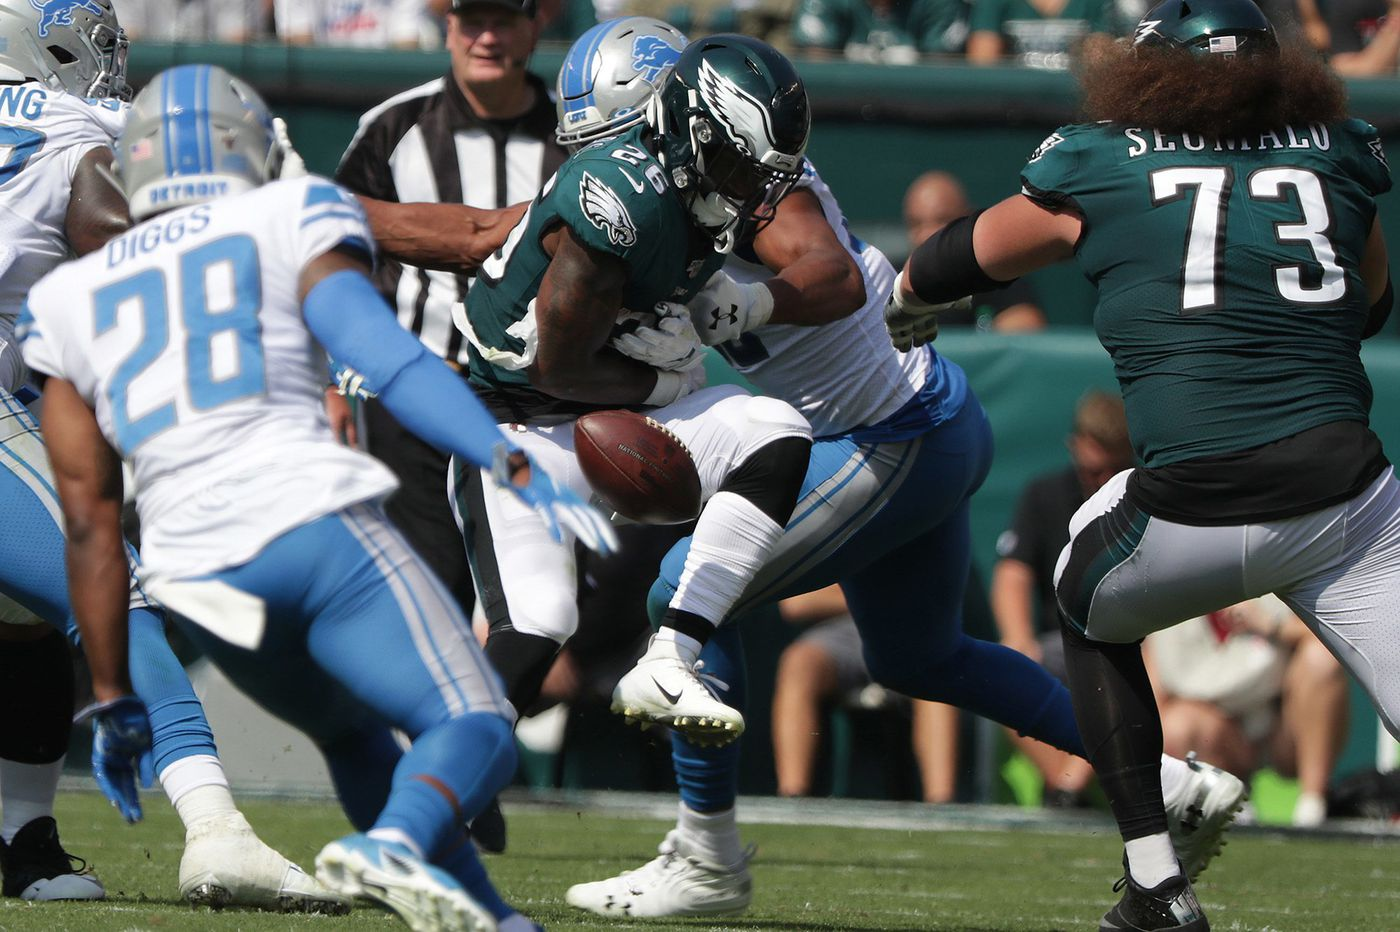 Eagles' Malcolm Jenkins: It's a tough town, 'gotta be mentally tough' to move on | Early Birds